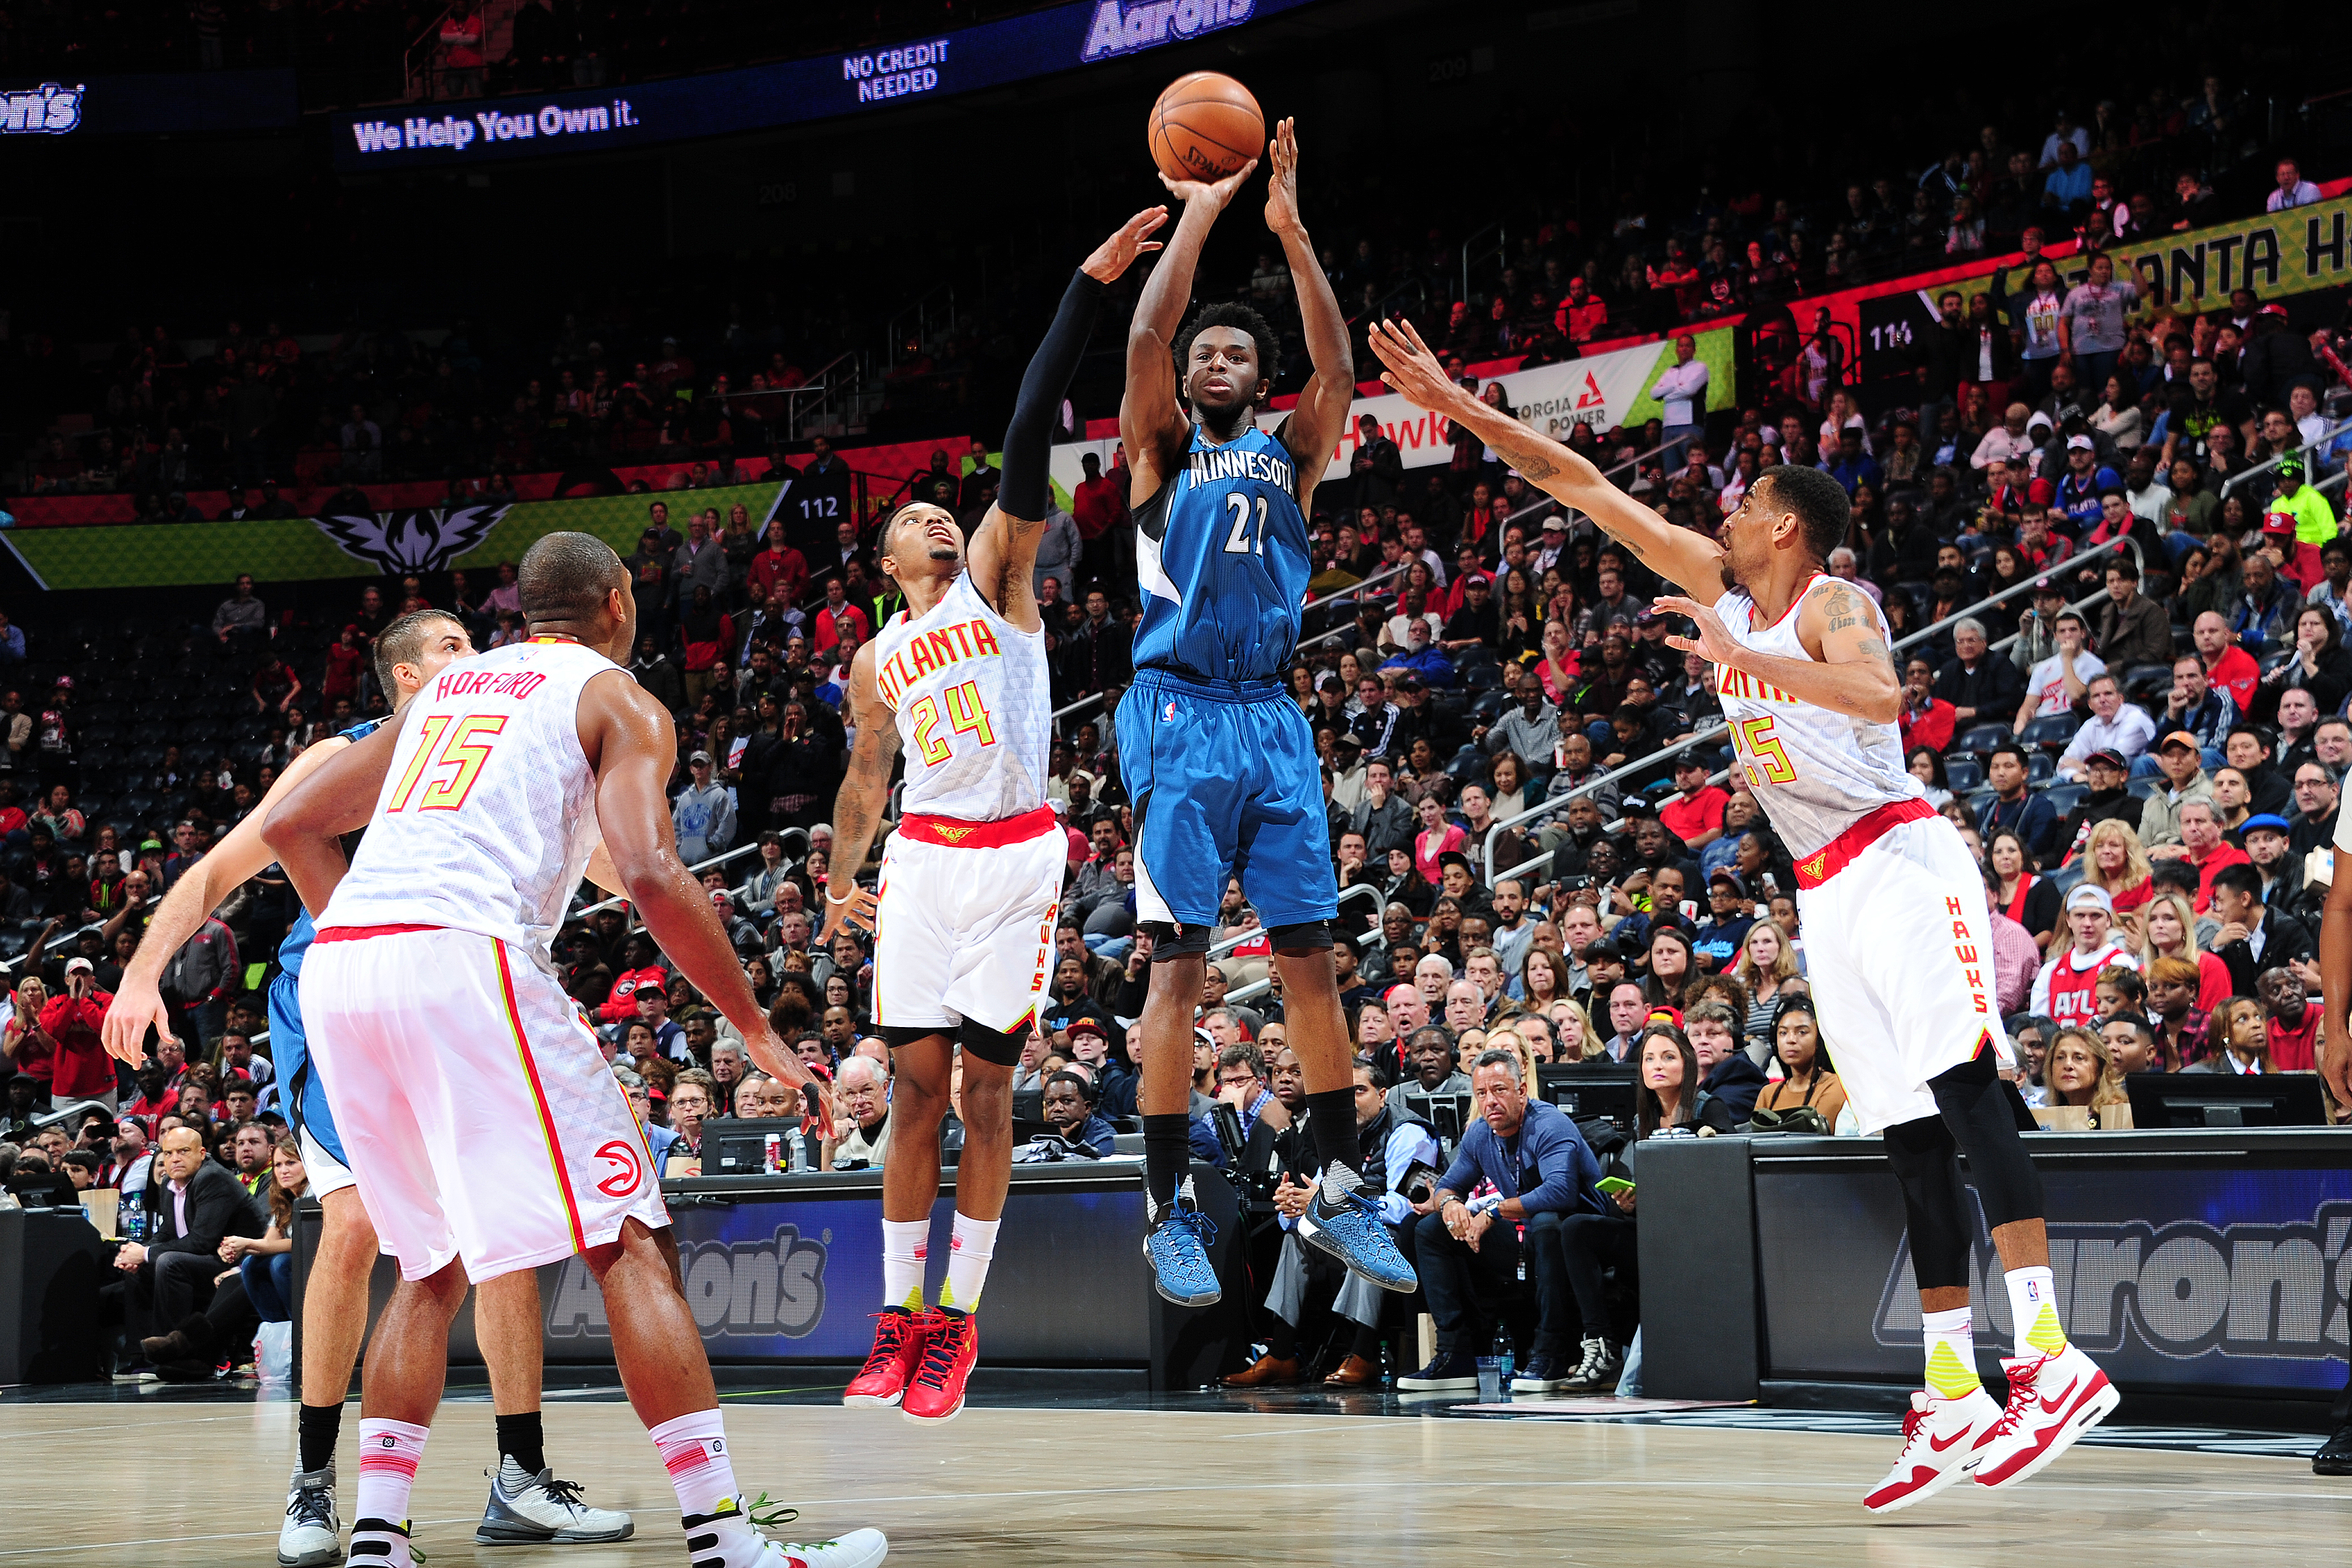 ATLANTA, GA - NOVEMBER 9:  Andrew Wiggins #22 of the Minnesota Timberwolves shoots the ball against the Atlanta Hawks during the game on November 9, 2015 at Philips Arena in Atlanta, Georgia.  (Photo by Scott Cunningham/NBAE via Getty Images)